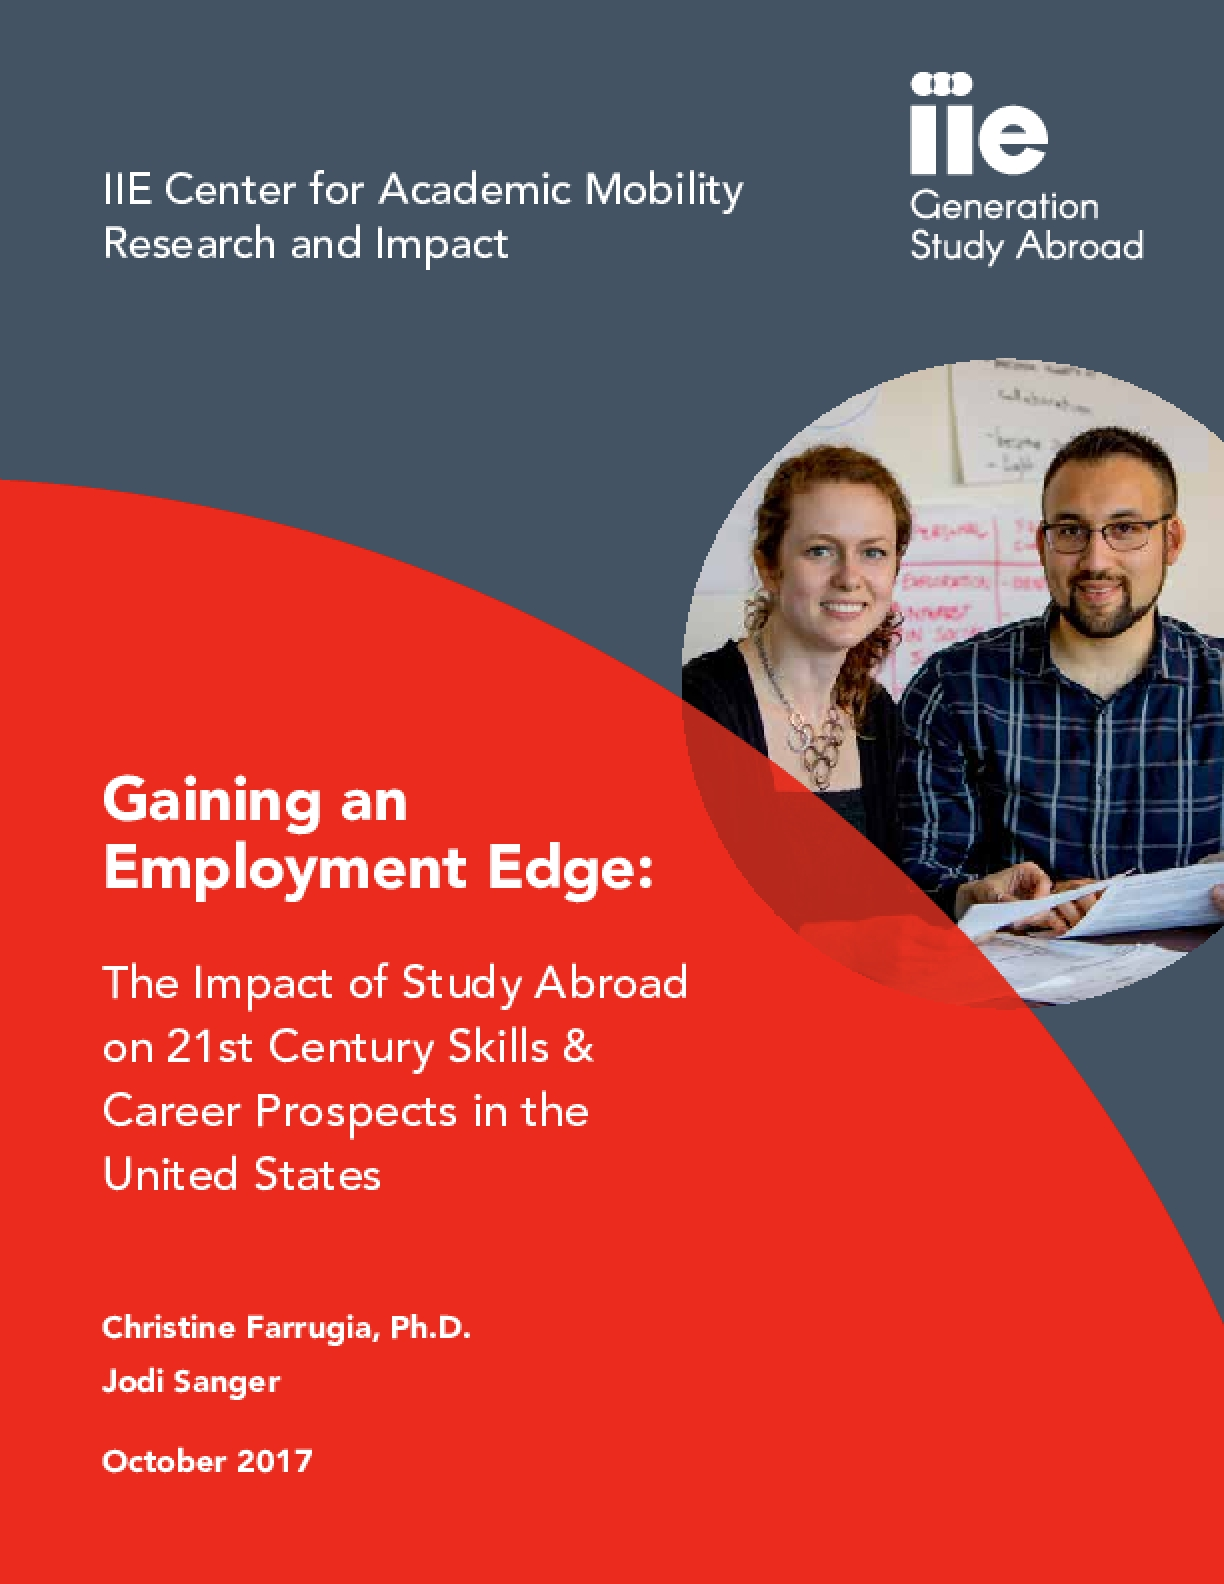 Gaining an Employment Edge: The Impact of Study Abroad